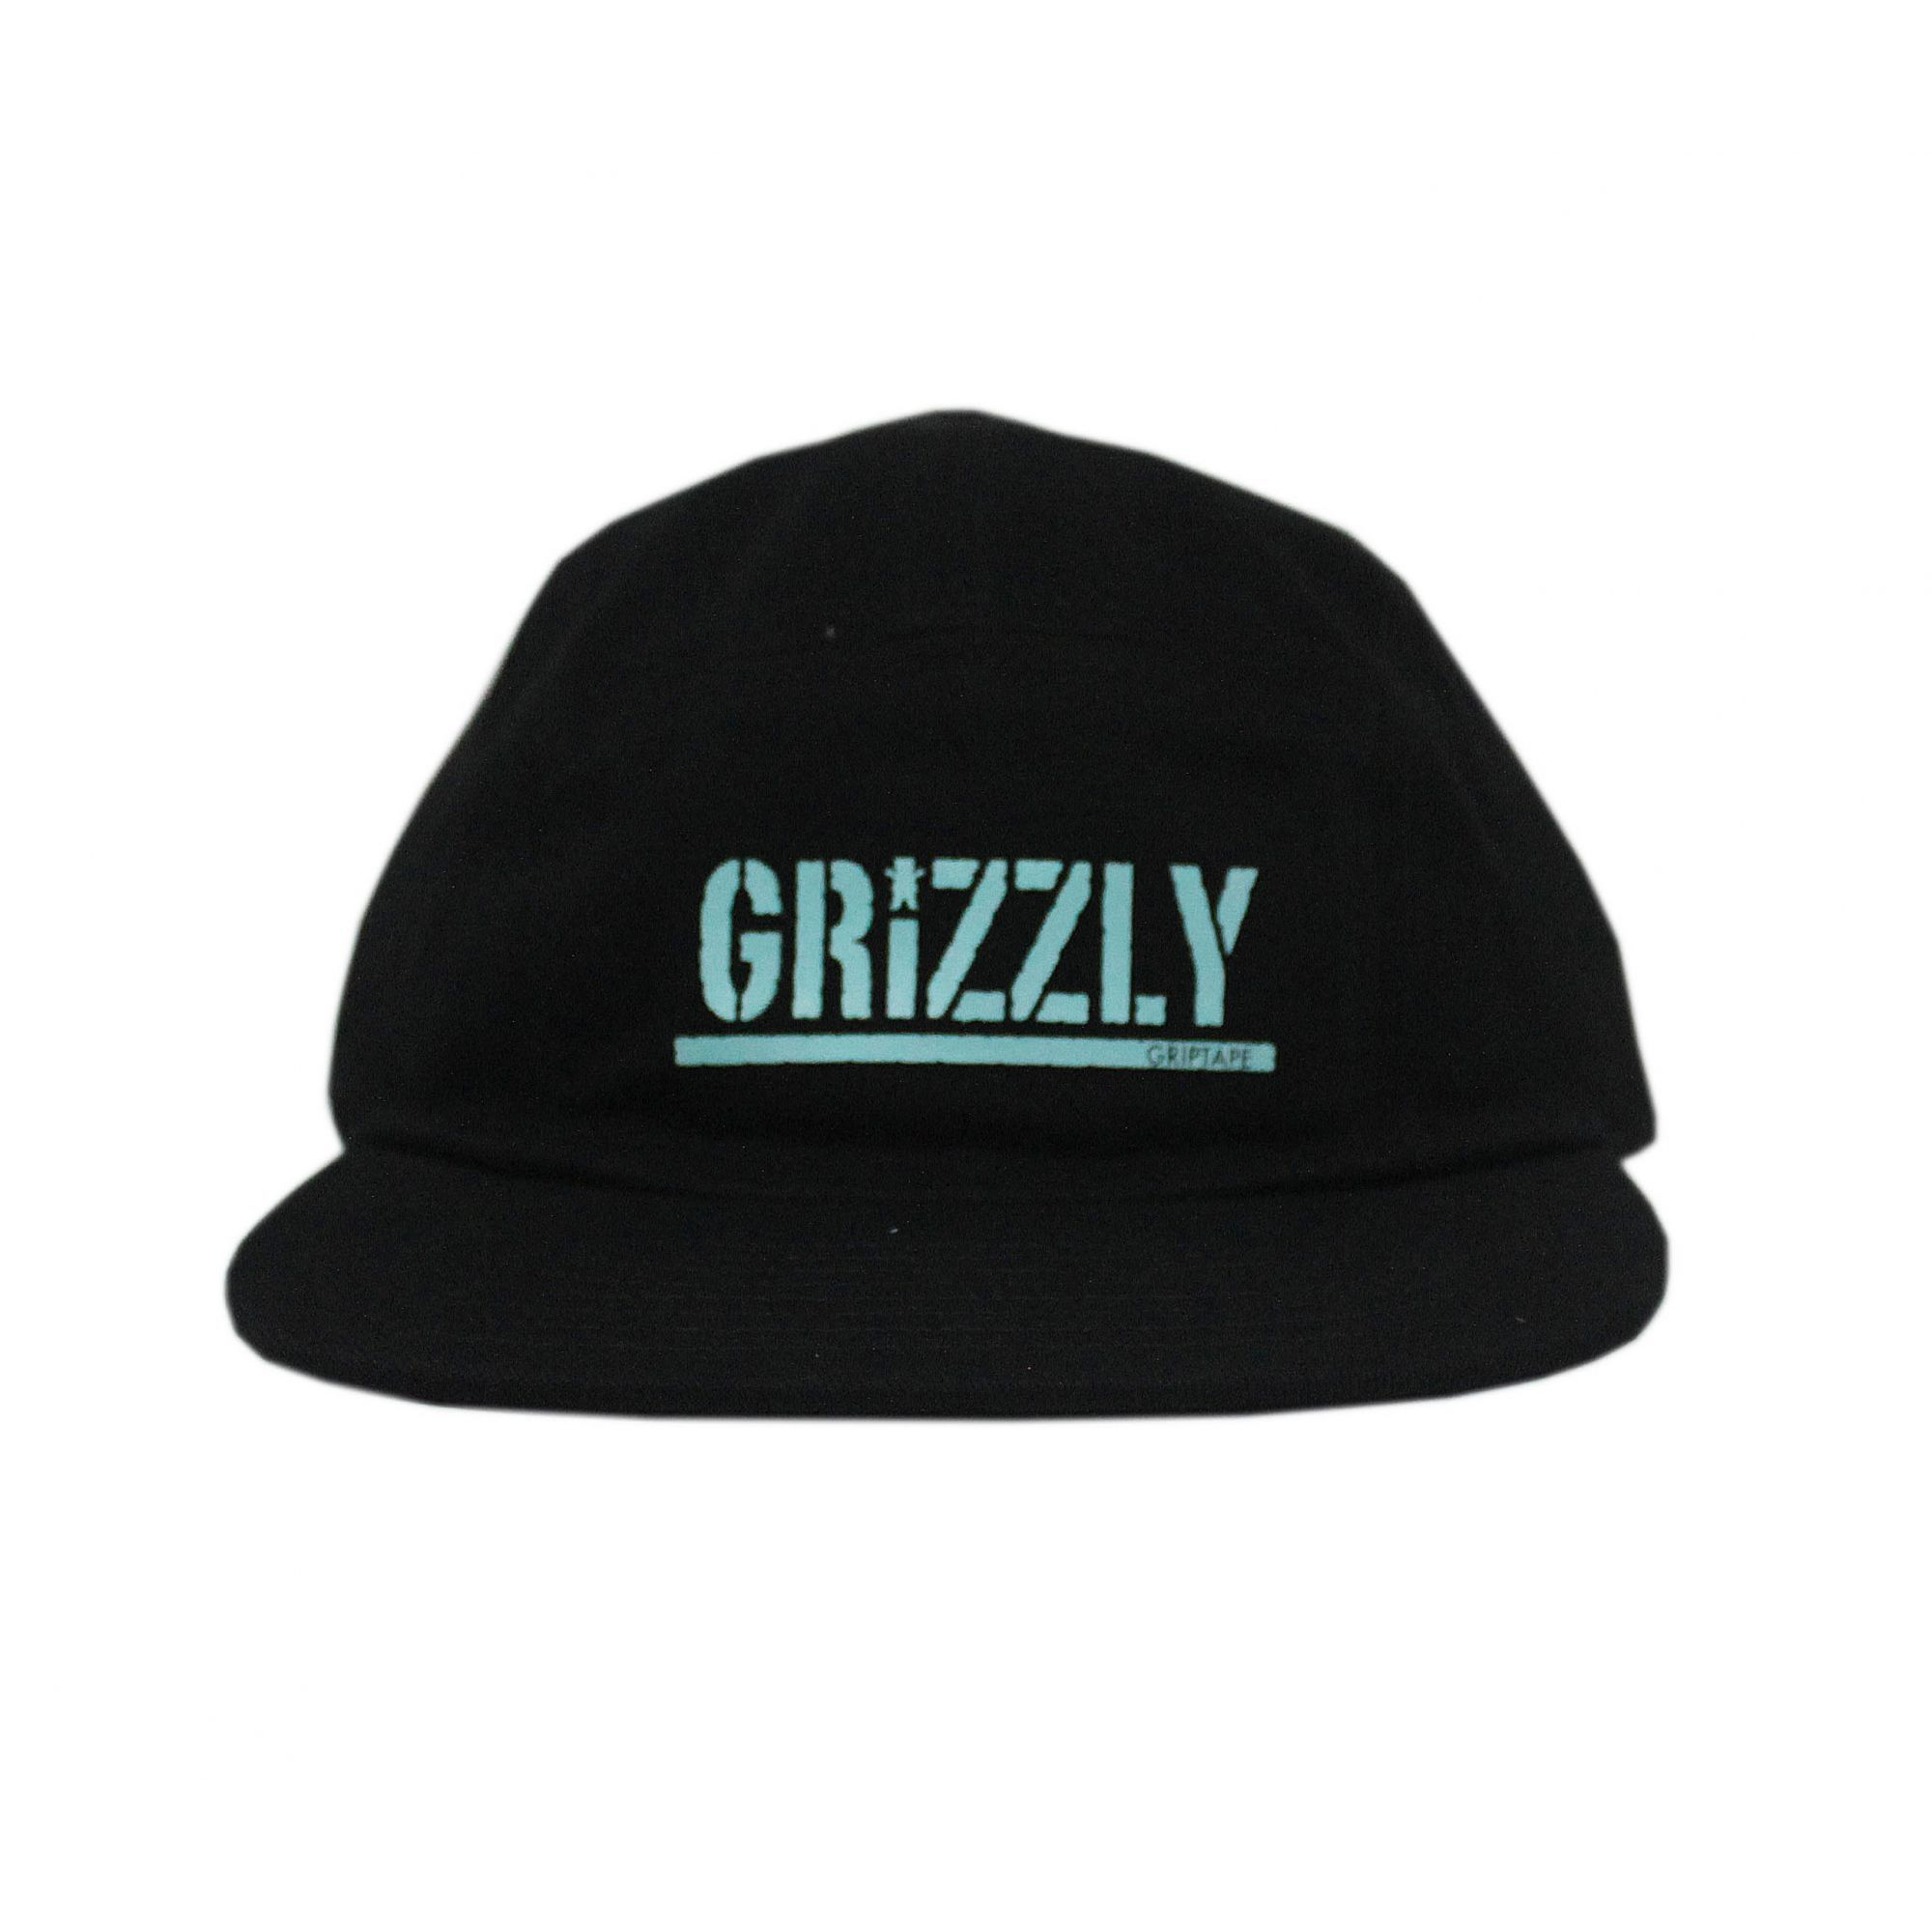 Boné Grizzly Five Panel Stamped Camper Unstructer Clip Preto